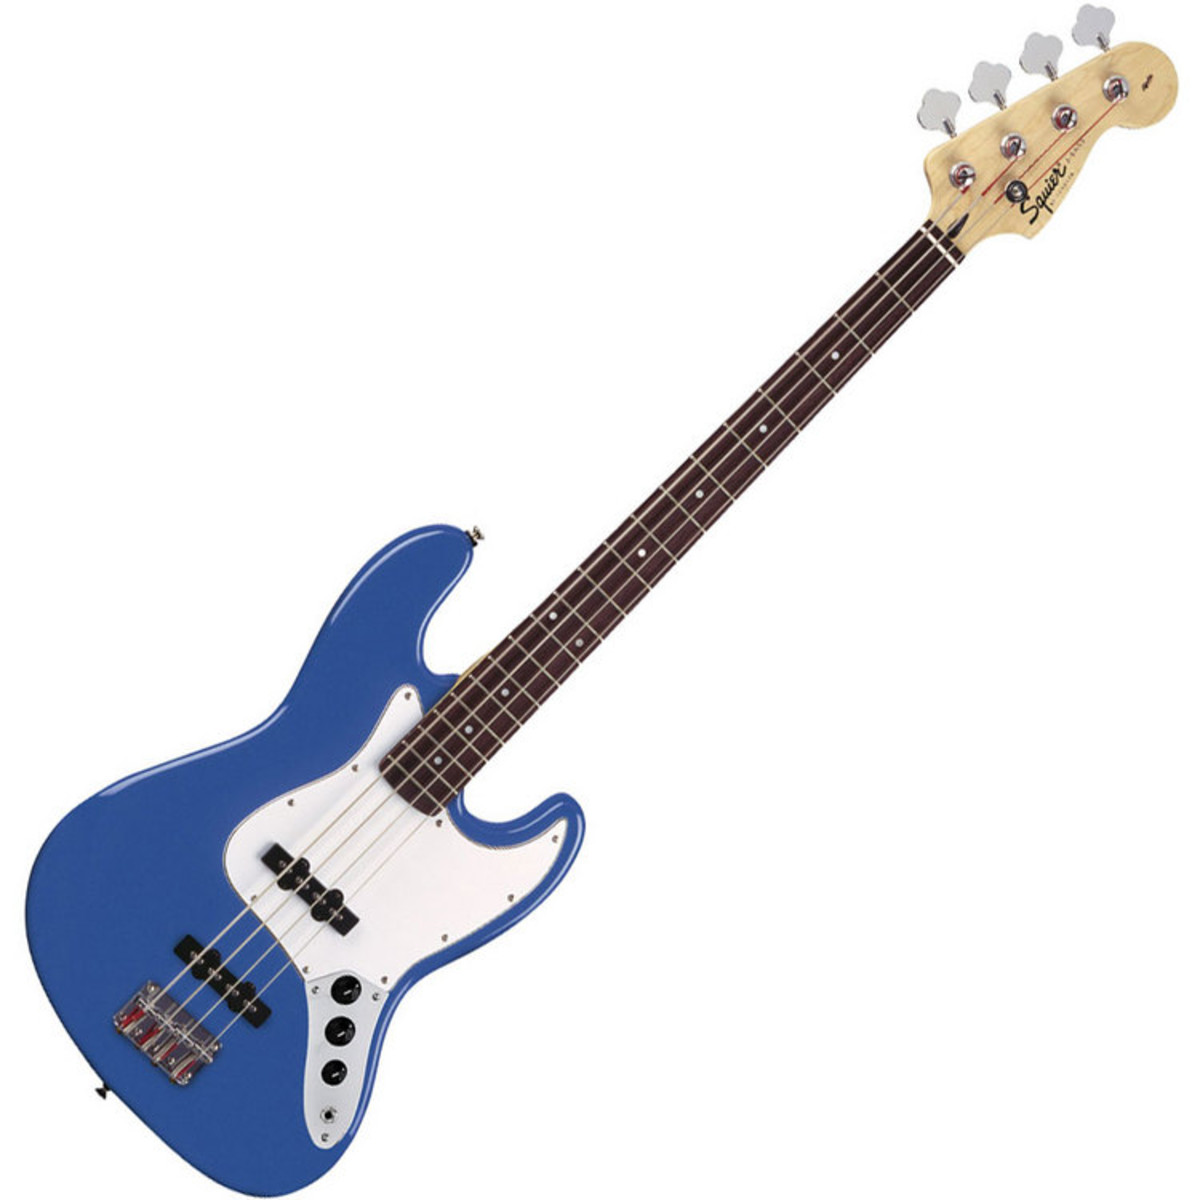 squier by fender affinity jazz bass metallic blue at gear4music. Black Bedroom Furniture Sets. Home Design Ideas